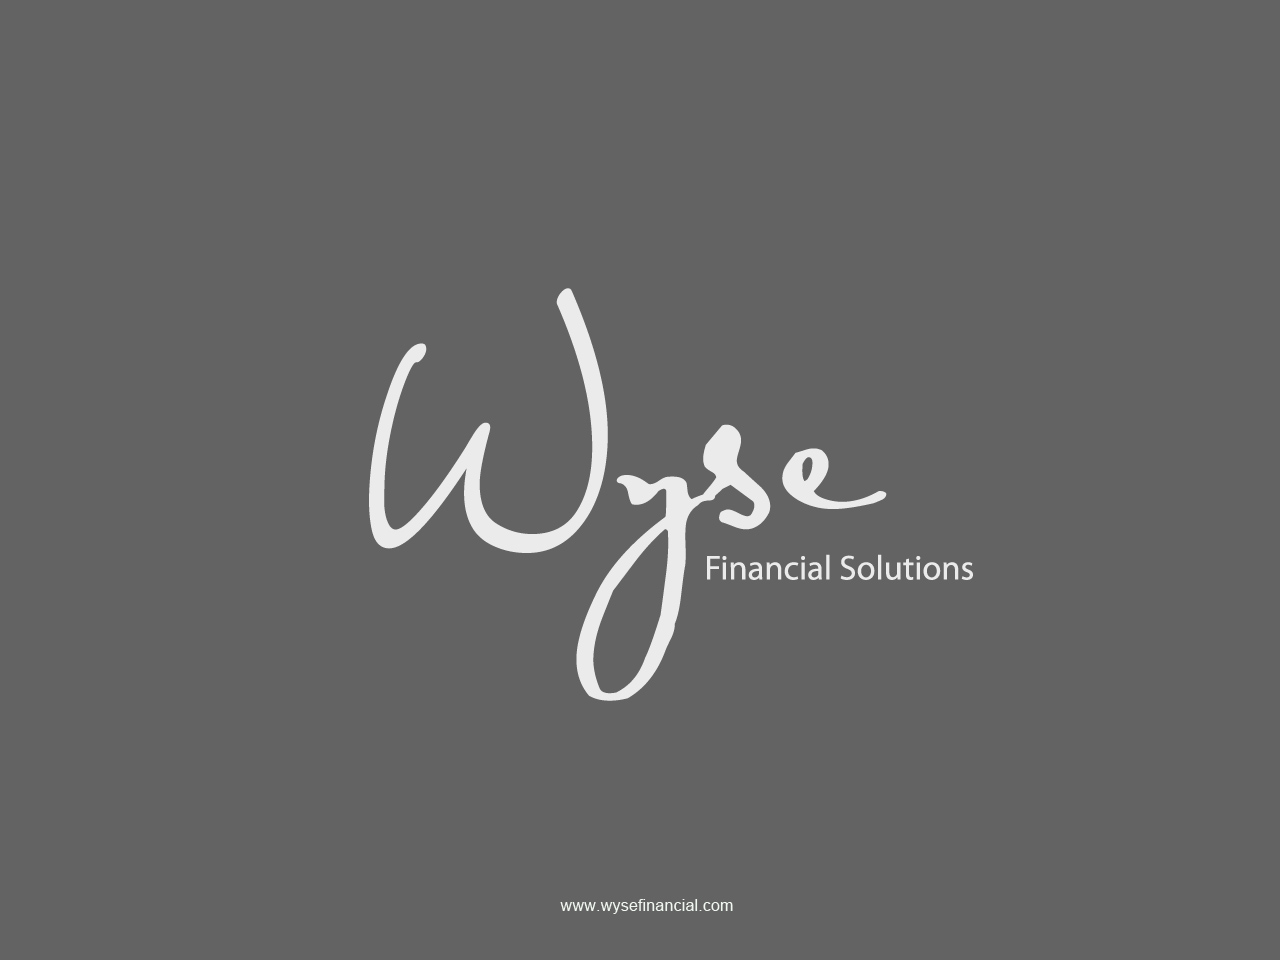 Logo Design by jpbituin - Entry No. 81 in the Logo Design Contest Fun Logo Design for Wyse Financial Solutions.